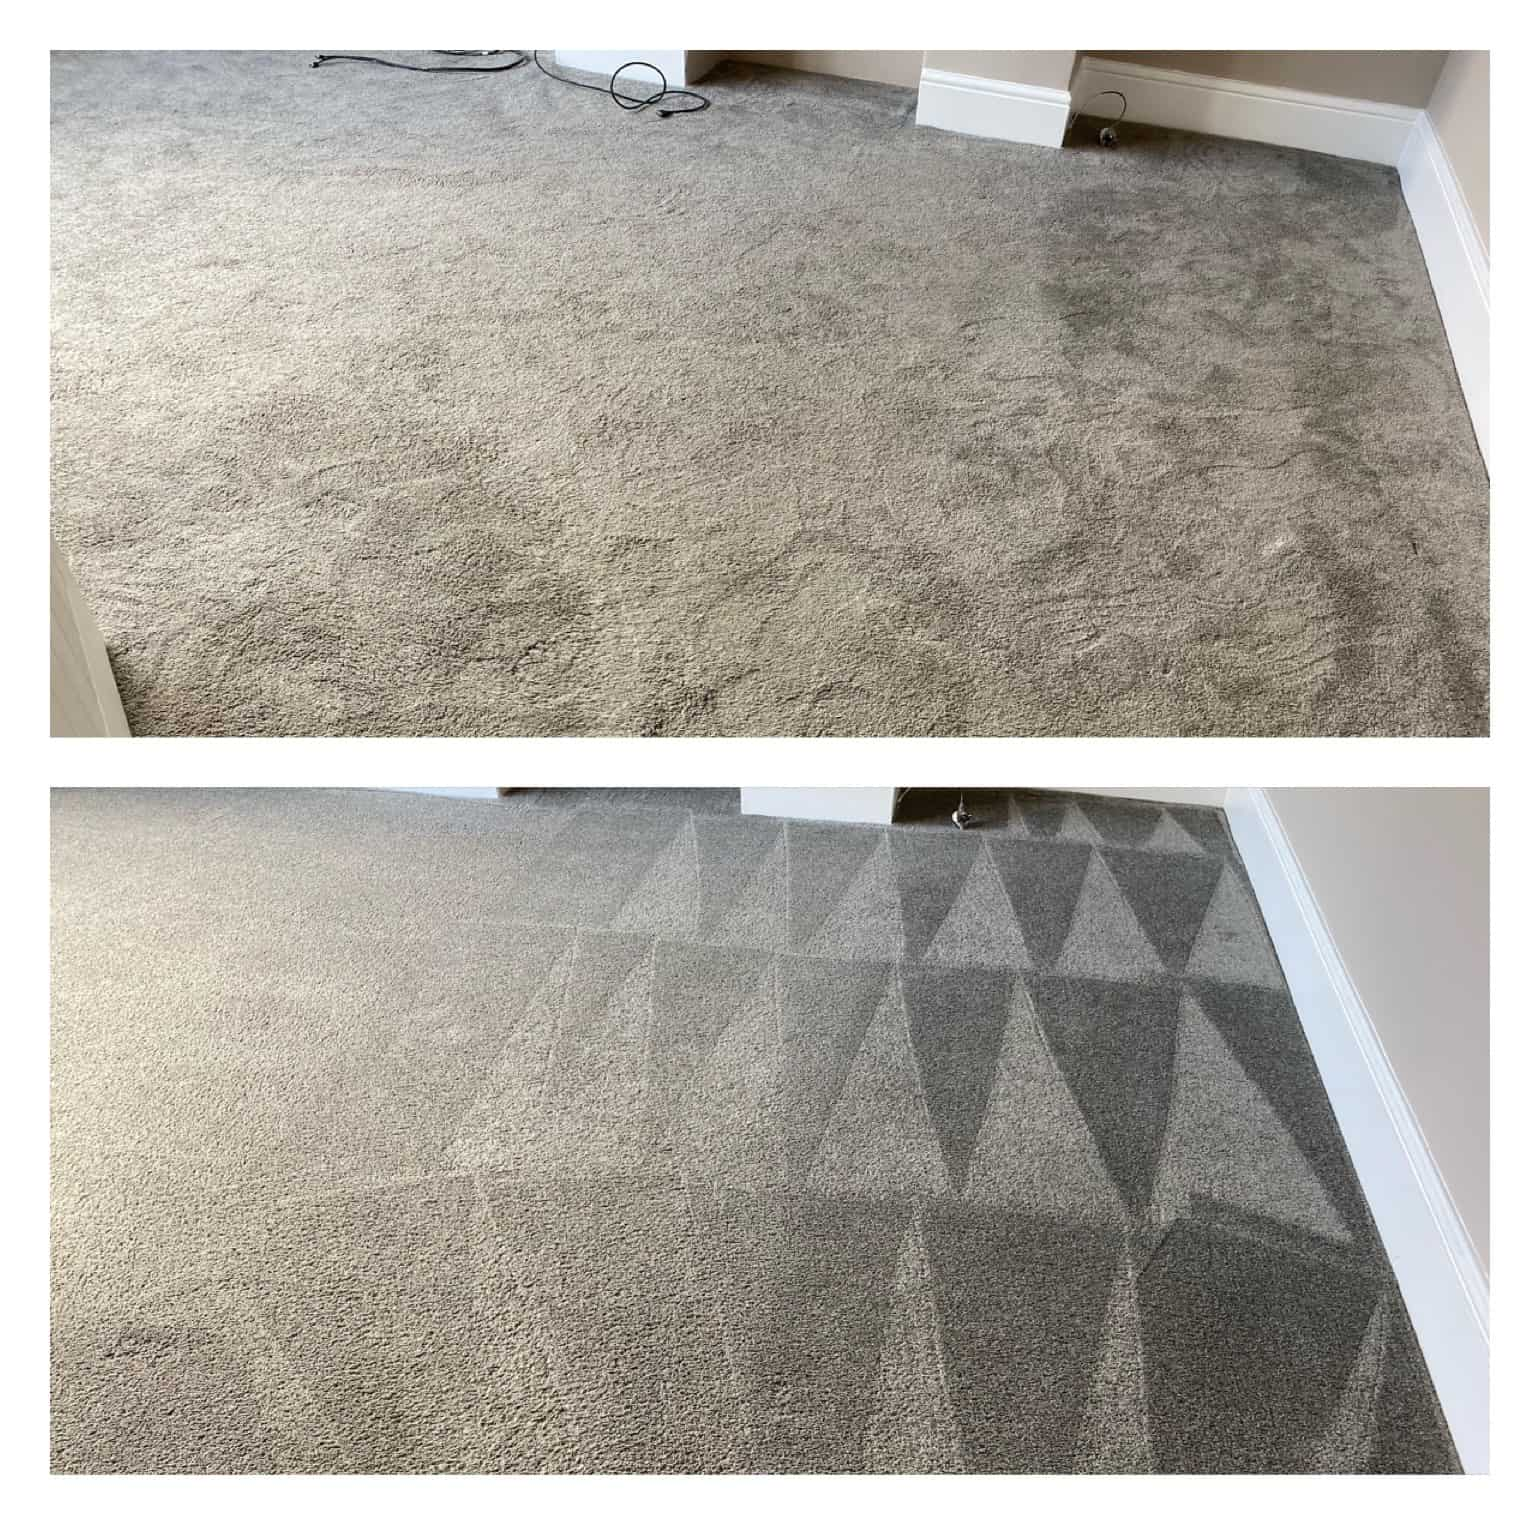 Before and After of carpet cleaning